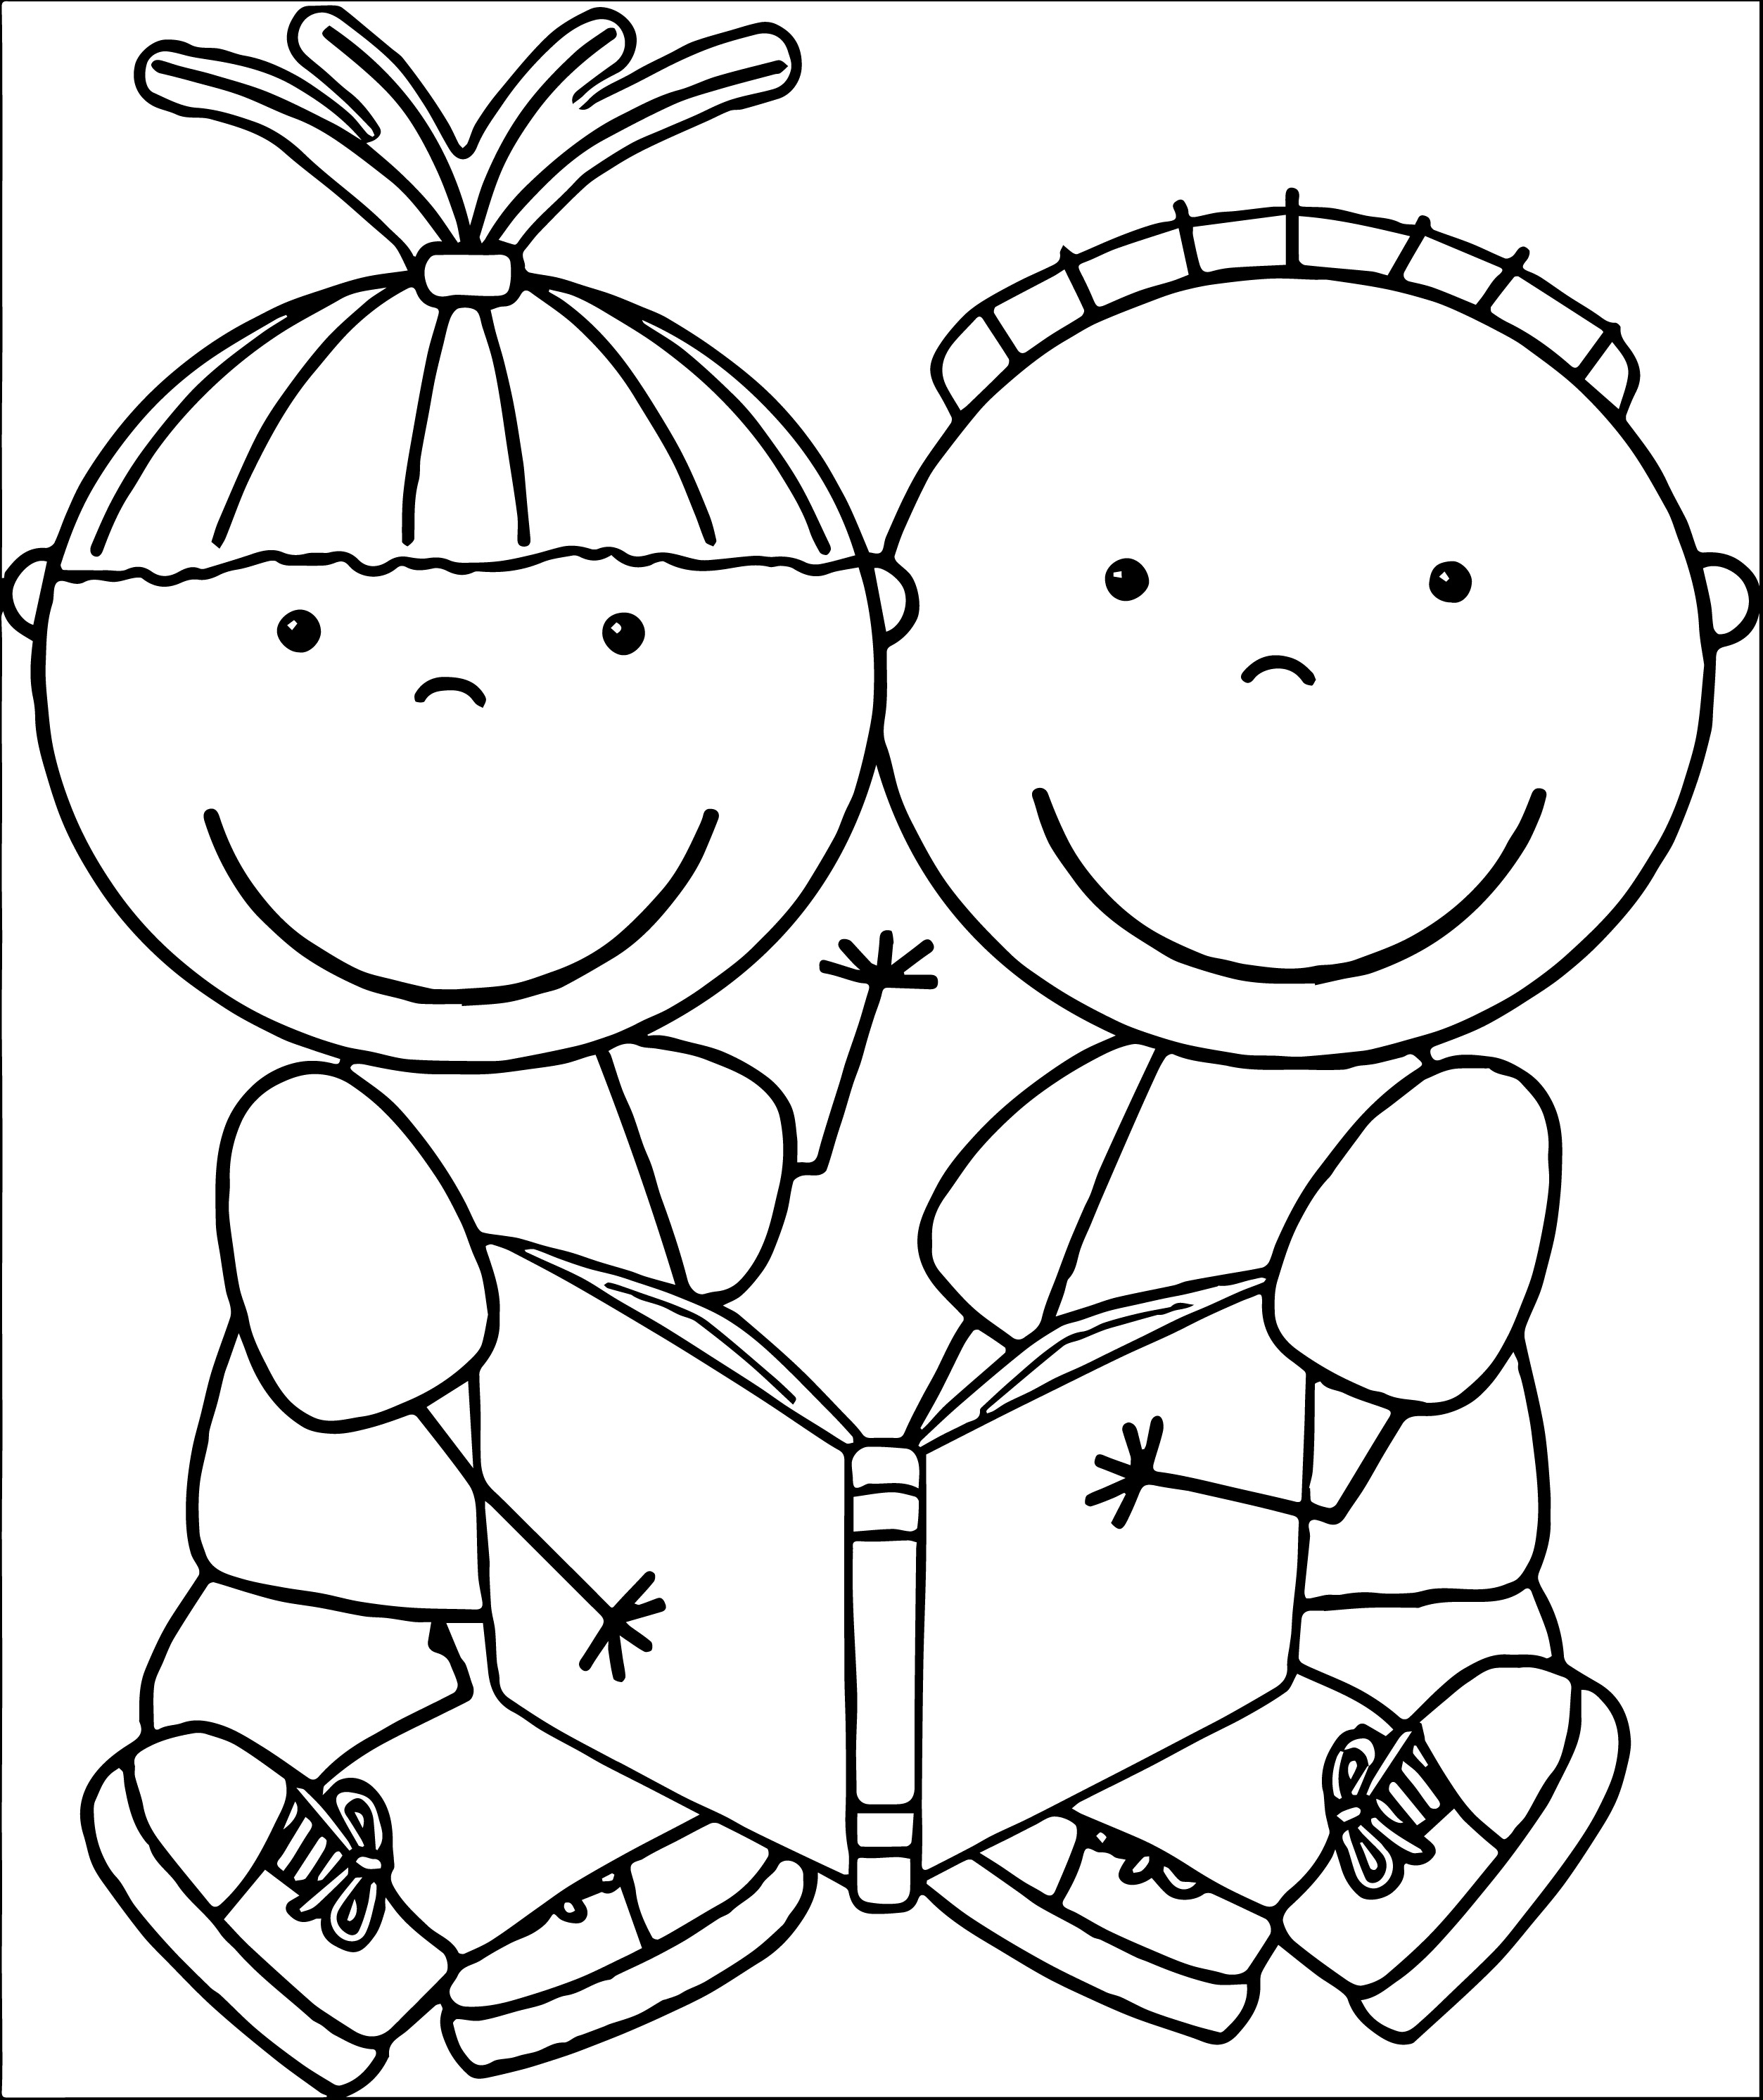 Free Black And White School Clipart College Reading.